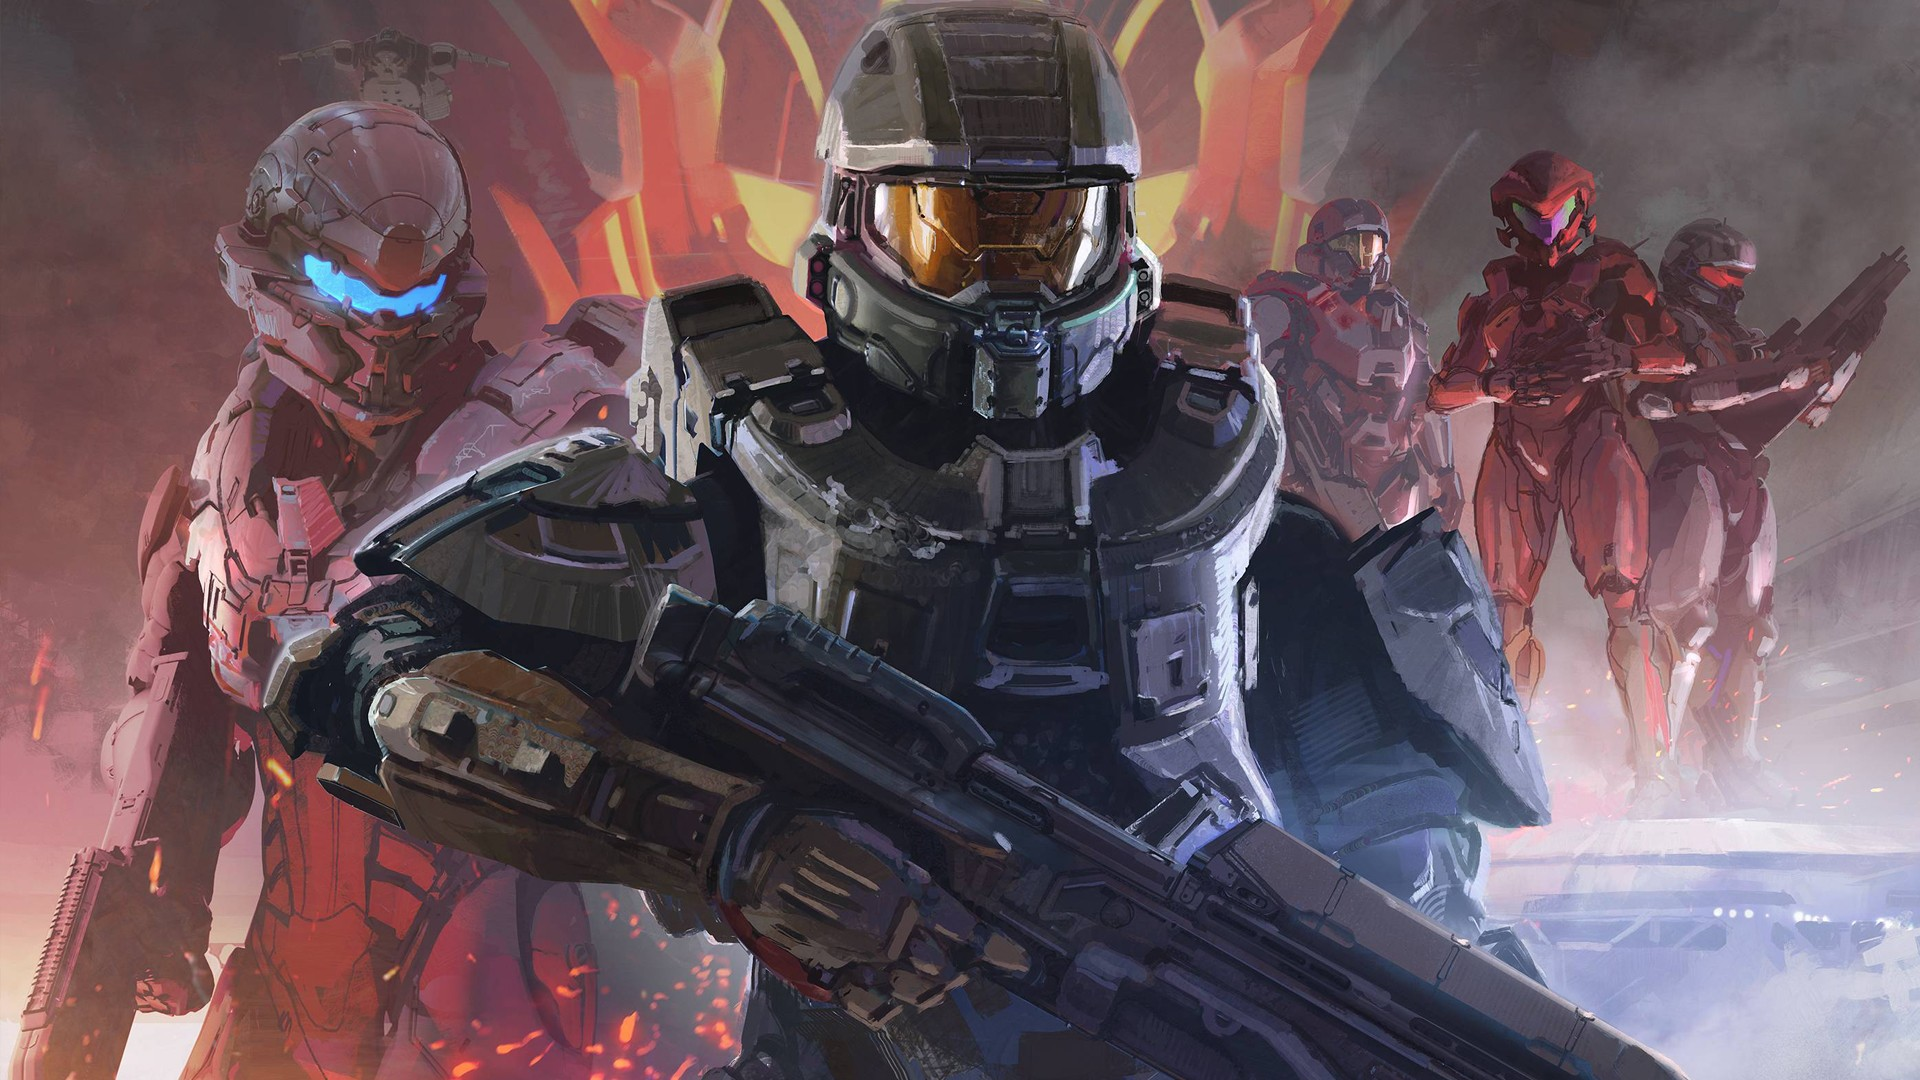 Halo 5: Guardians HD Wallpaper   Background Image   1920x1080   ID:602000 - Wallpaper Abyss